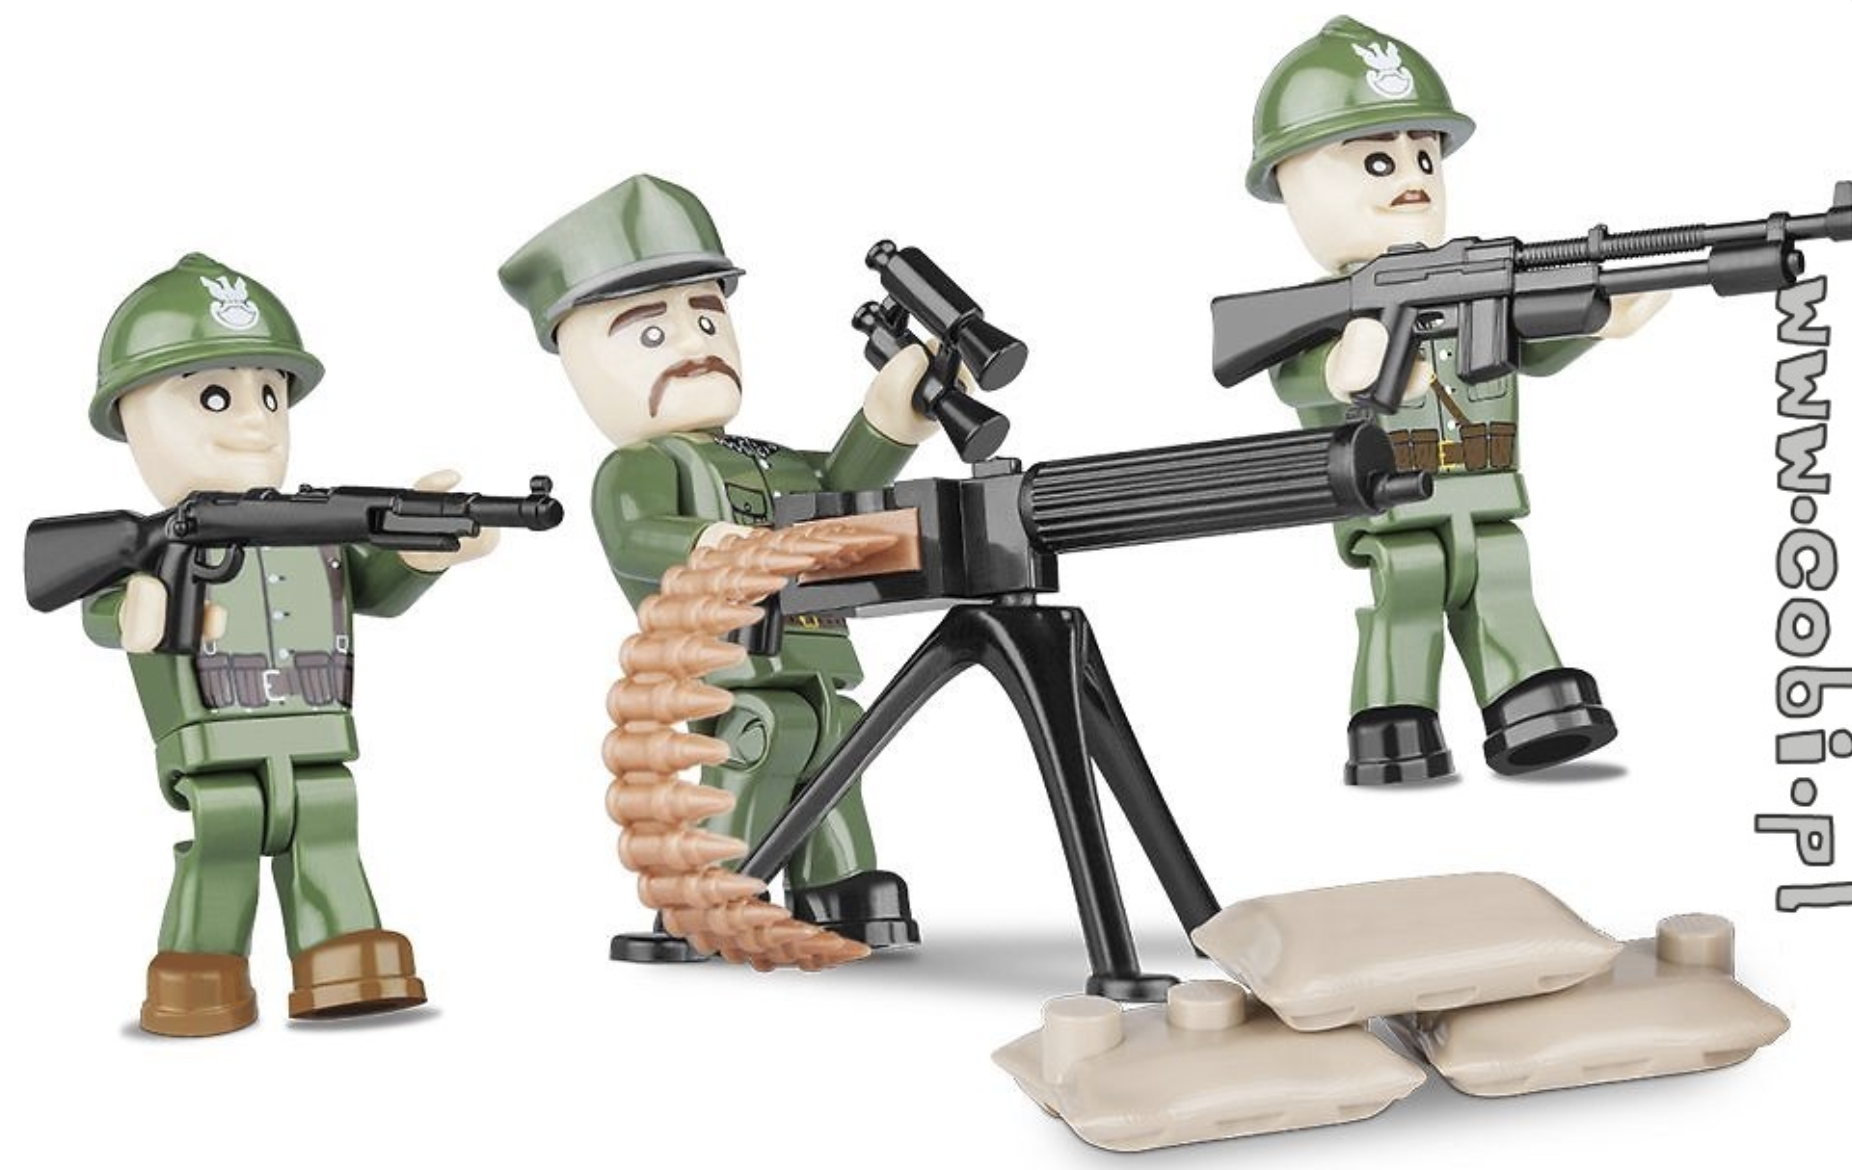 Alternatives to LEGO Minifigures - COBI Small Army Figures